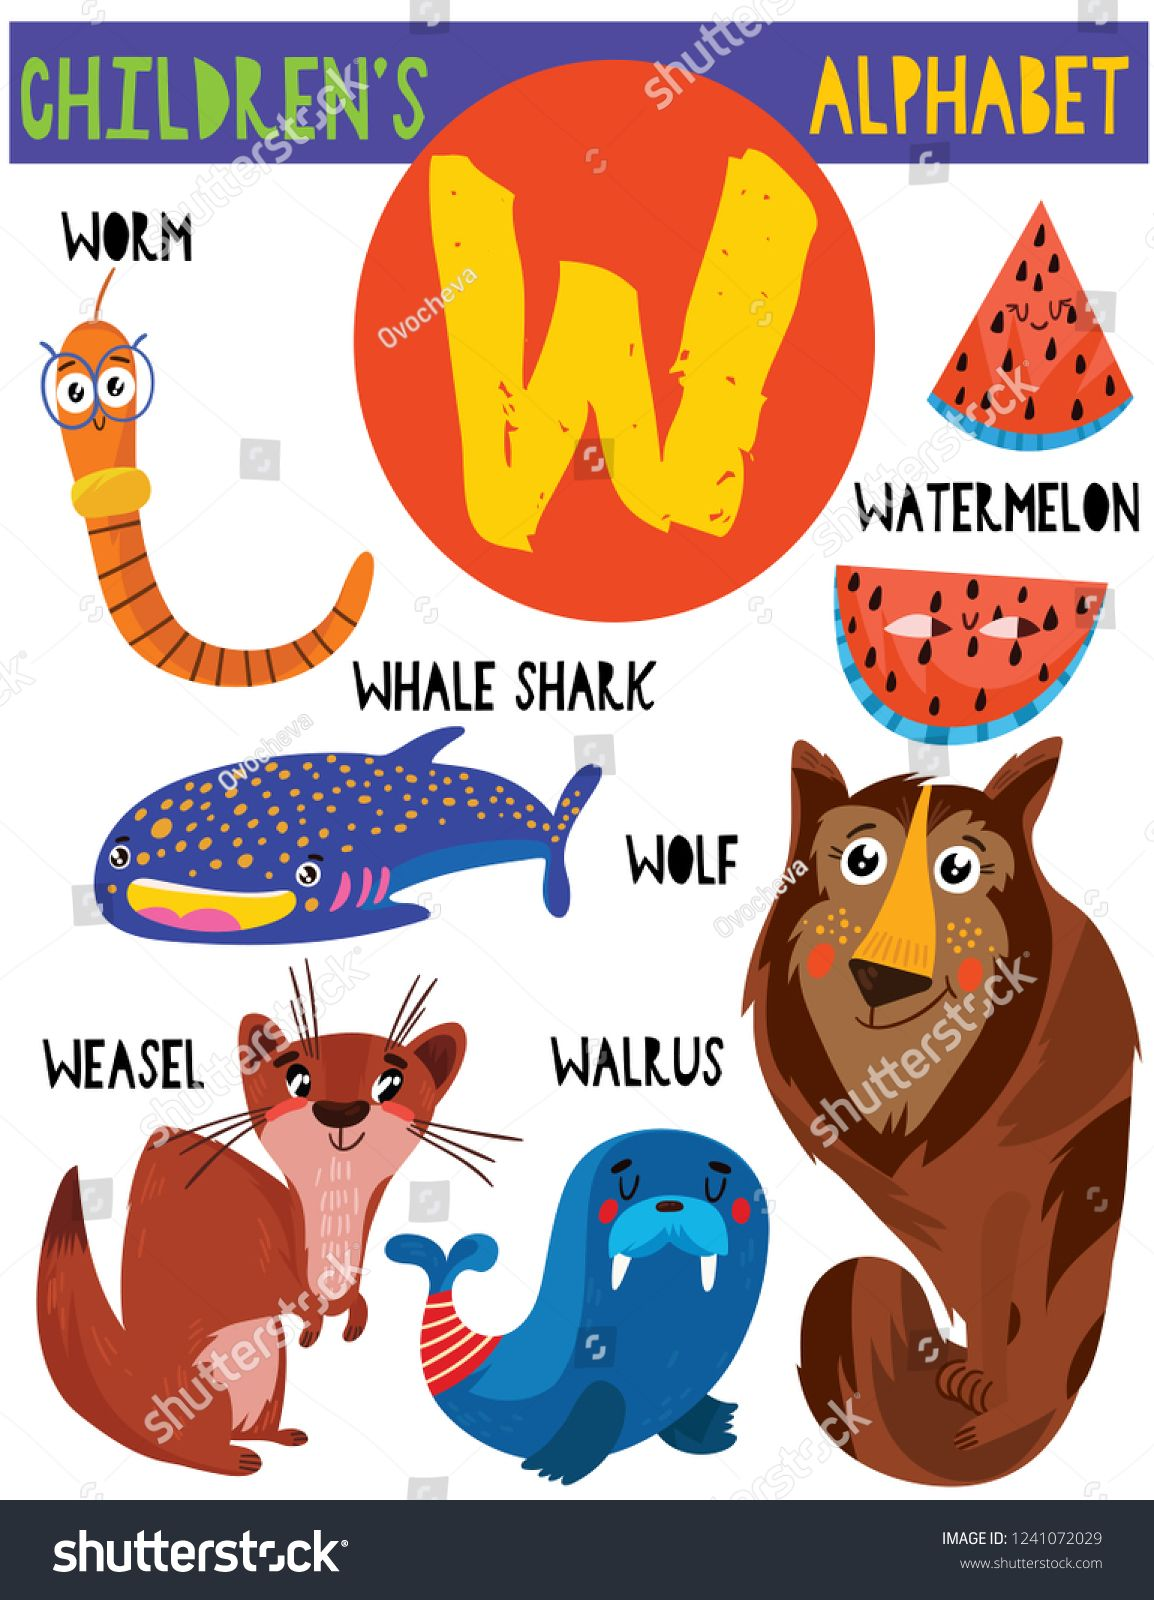 Letter W Cute Children S Alphabet With Adorable Animals And Other Things Poster For Kids Learning English Vocabu Childrens Alphabet Cute Animals Animal Posters